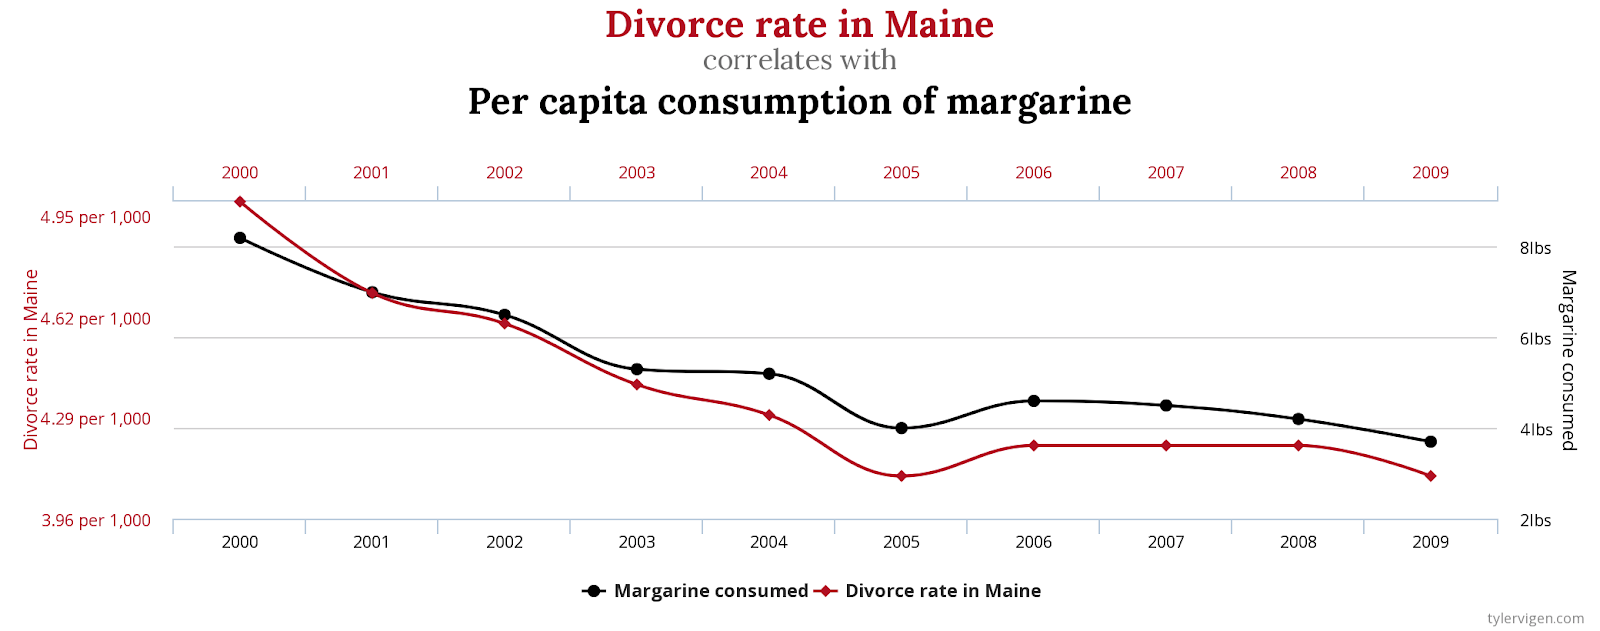 Spurious correlations are pretty common. NuGene isn't fooled though.